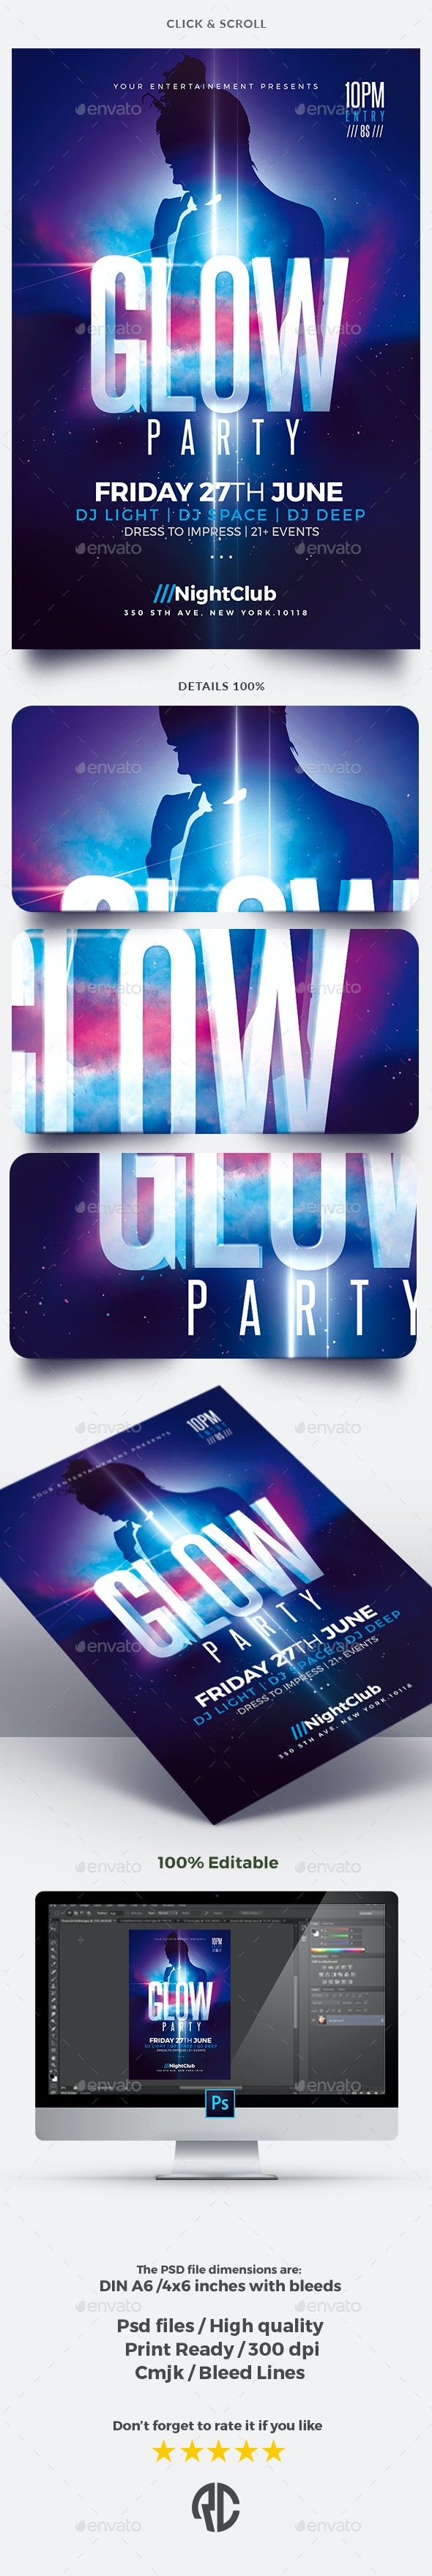 Glow Party | Psd Flyer Template - Clubs & Parties Events